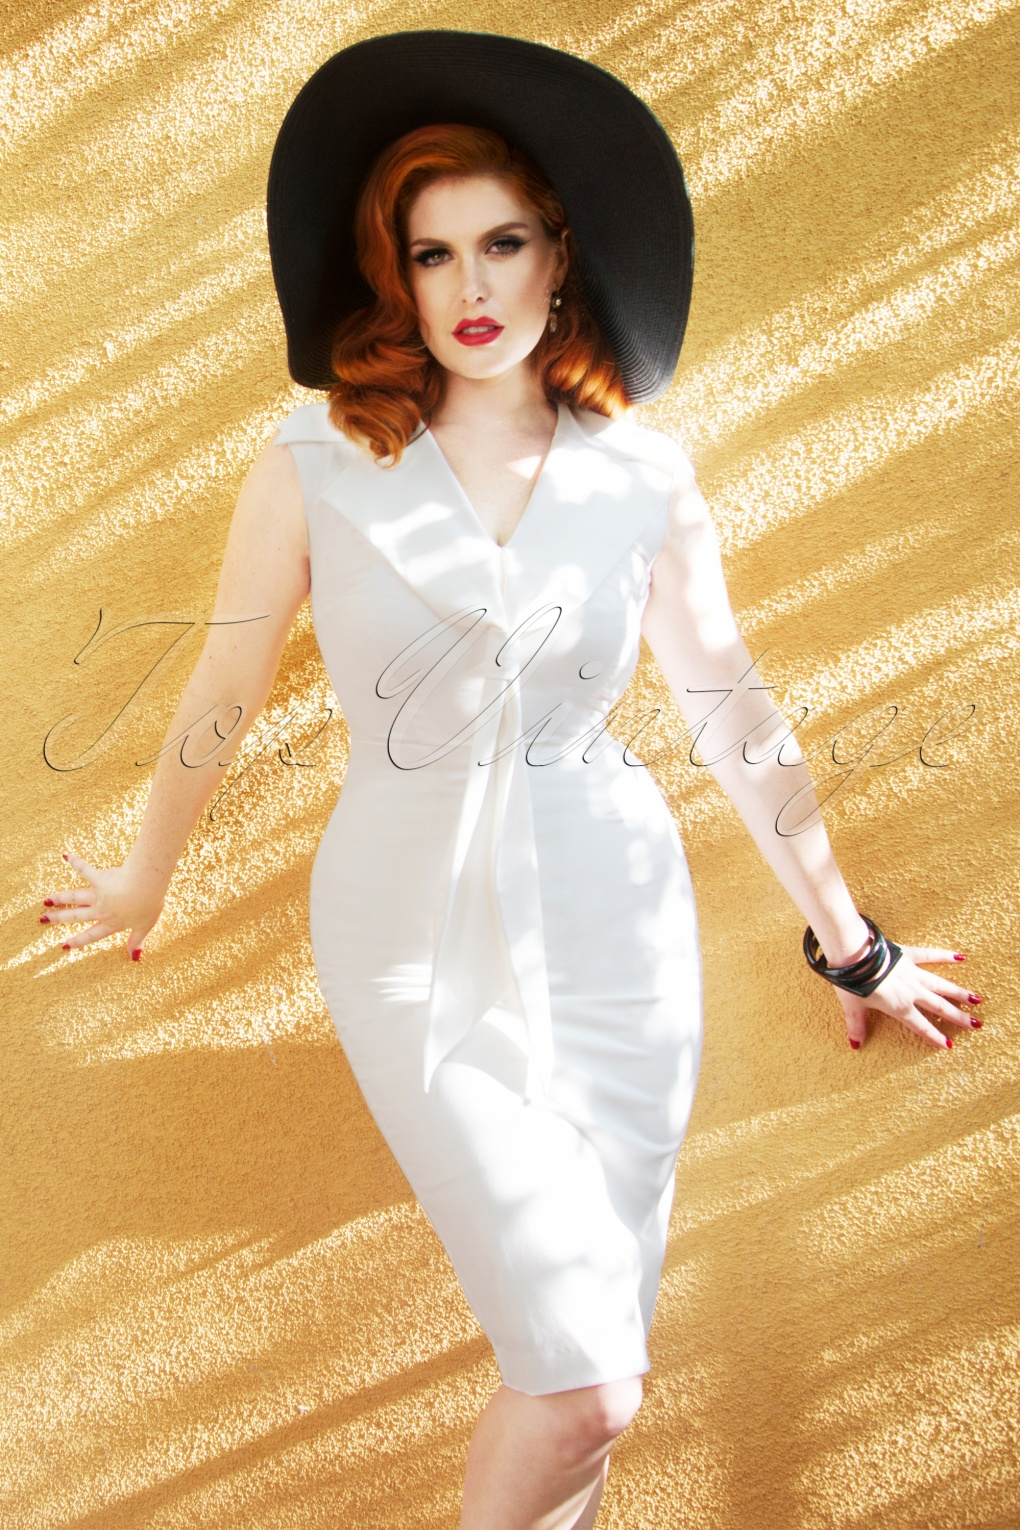 50s Wedding Dress, 1950s Style Wedding Dresses, Rockabilly Weddings The Genevieve Pencil Dress in Pure White £94.64 AT vintagedancer.com